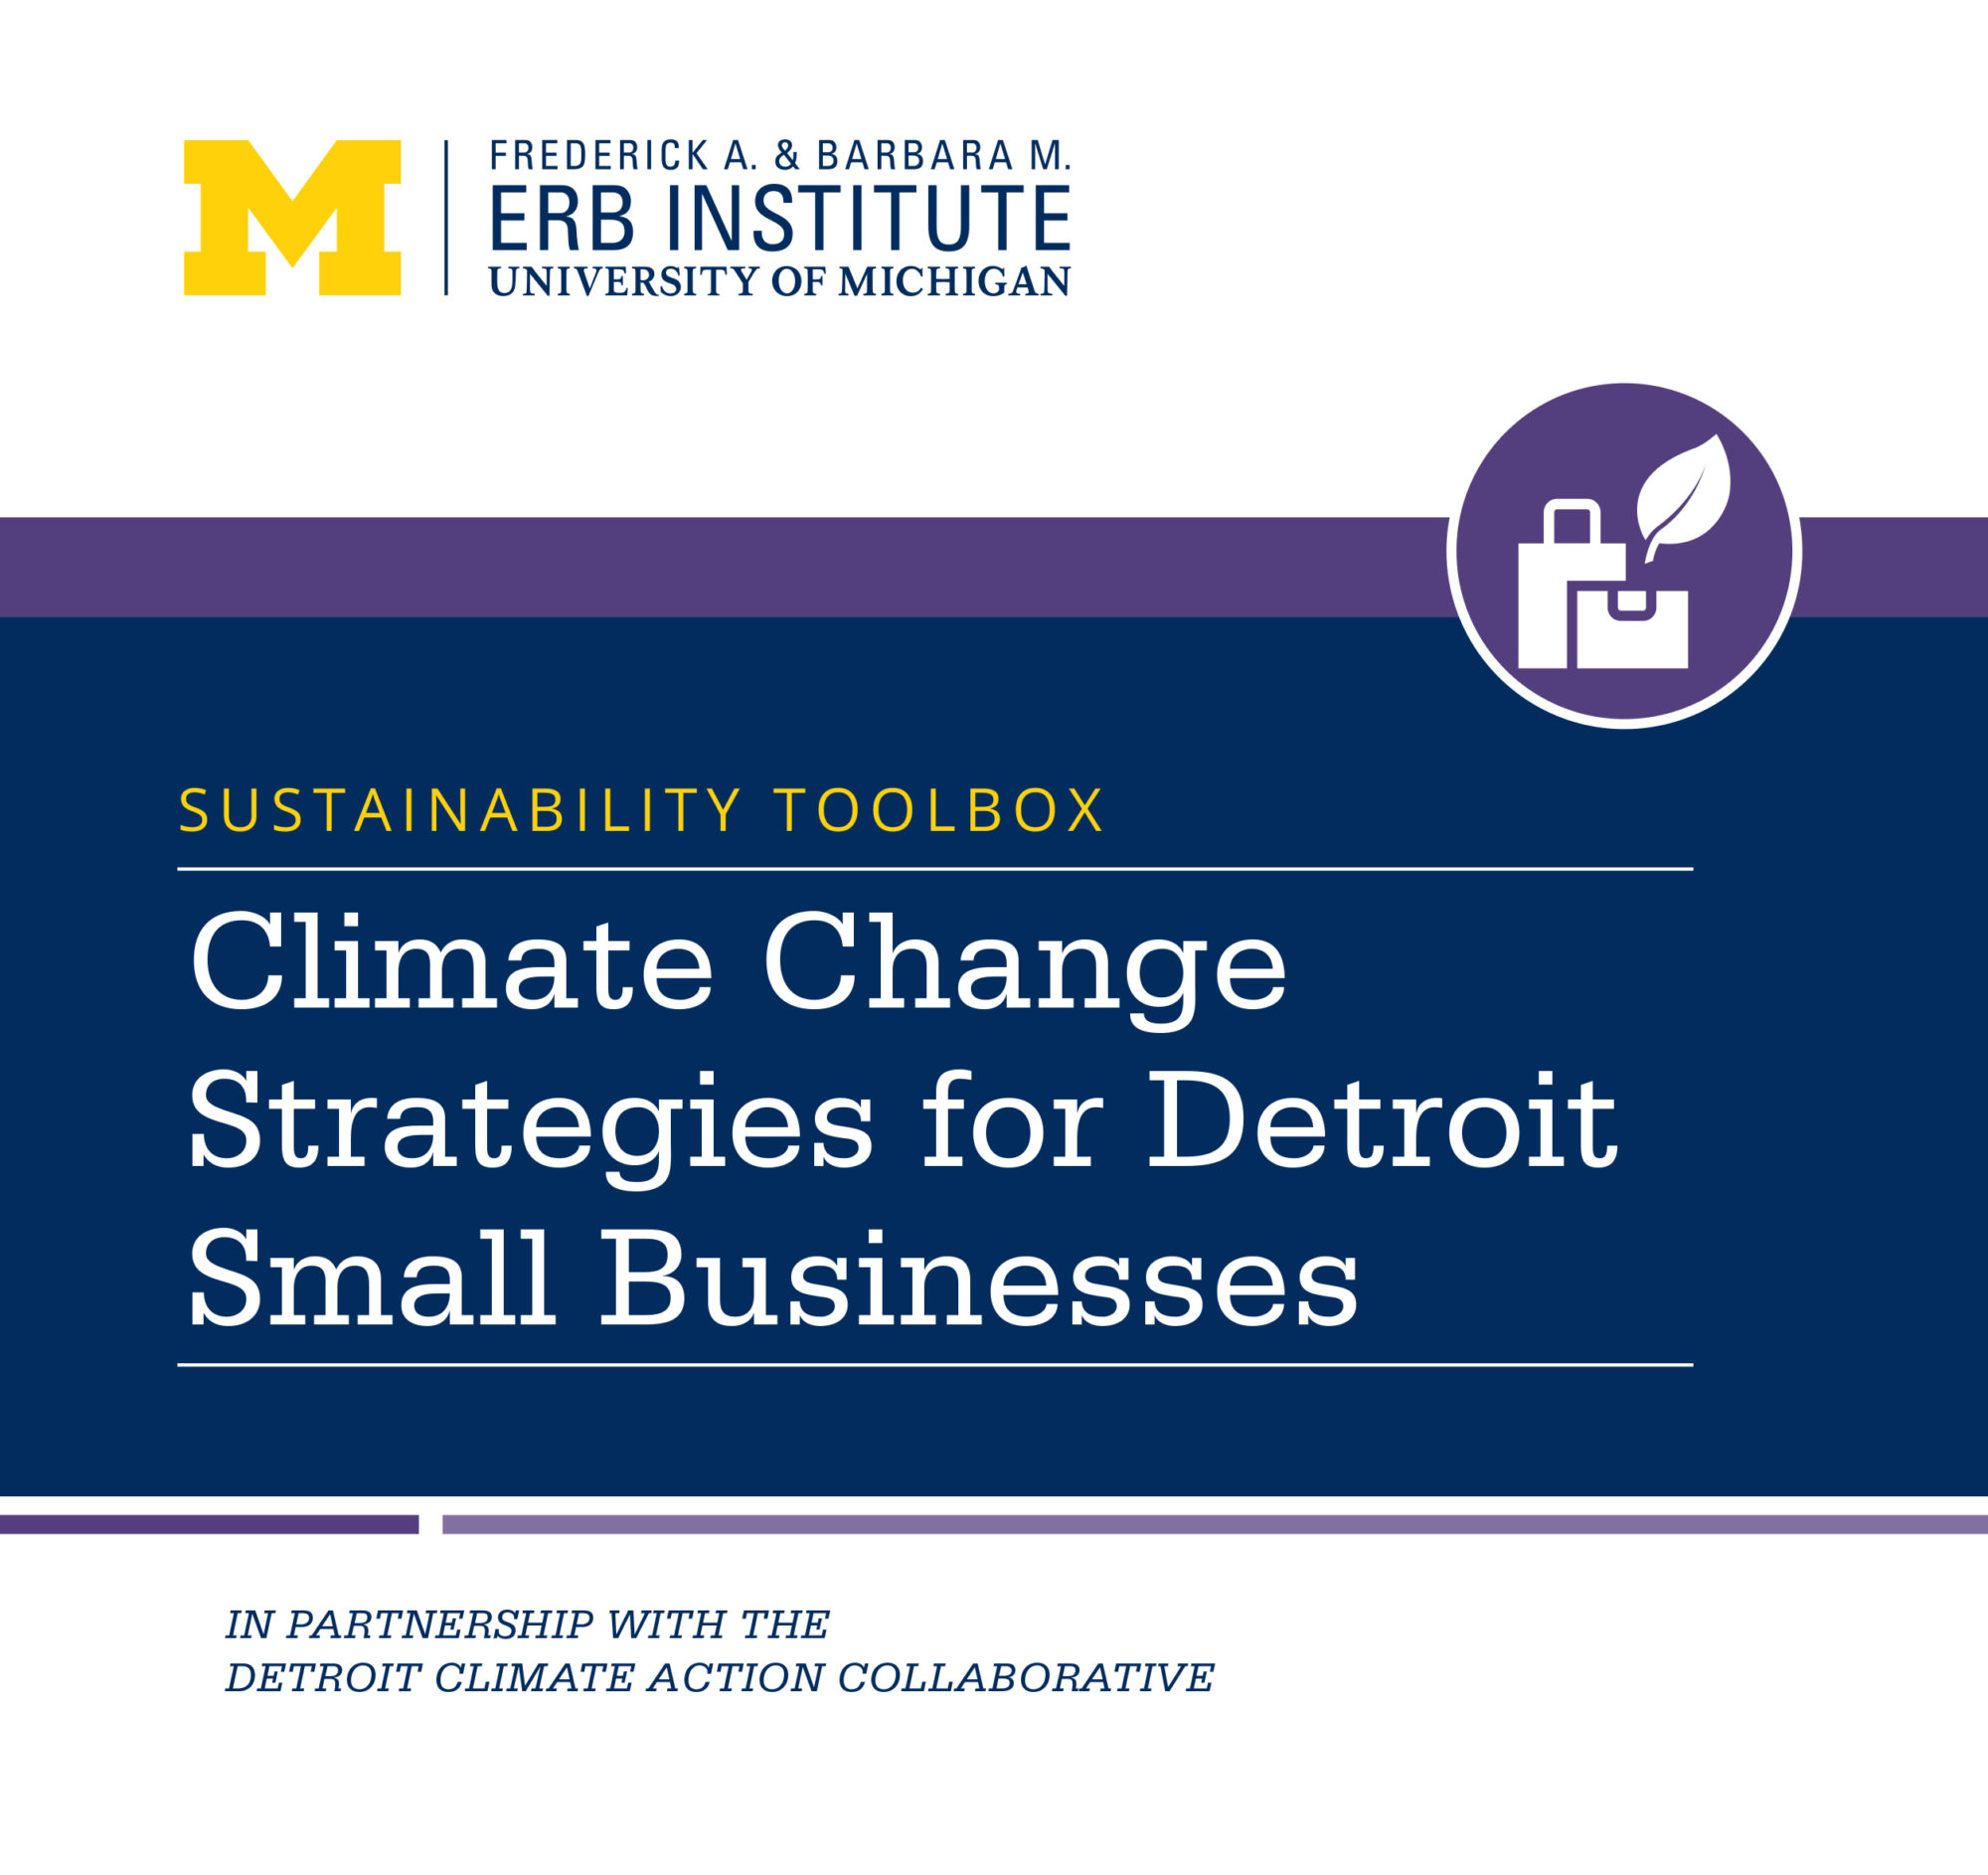 Sustainability Toolbox: Climate Change Strategies for Detroit Small Businesses